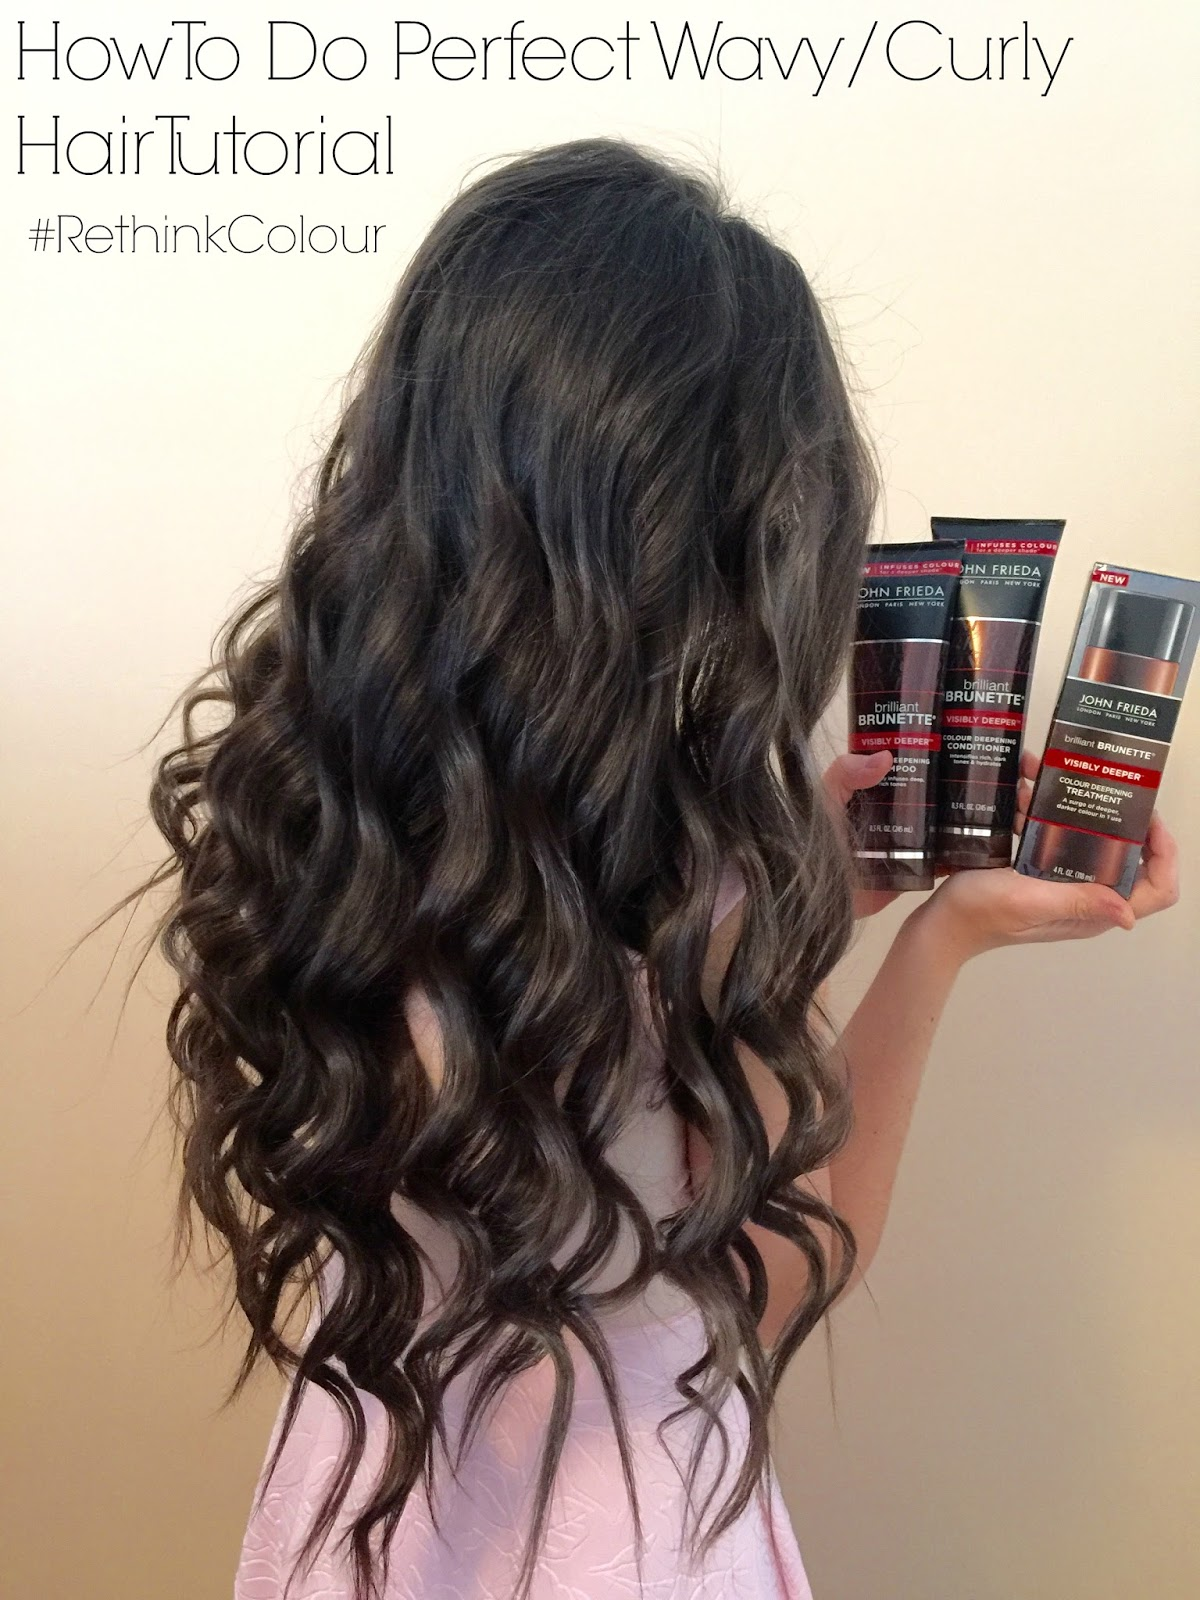 how to make your curly hair look perfect